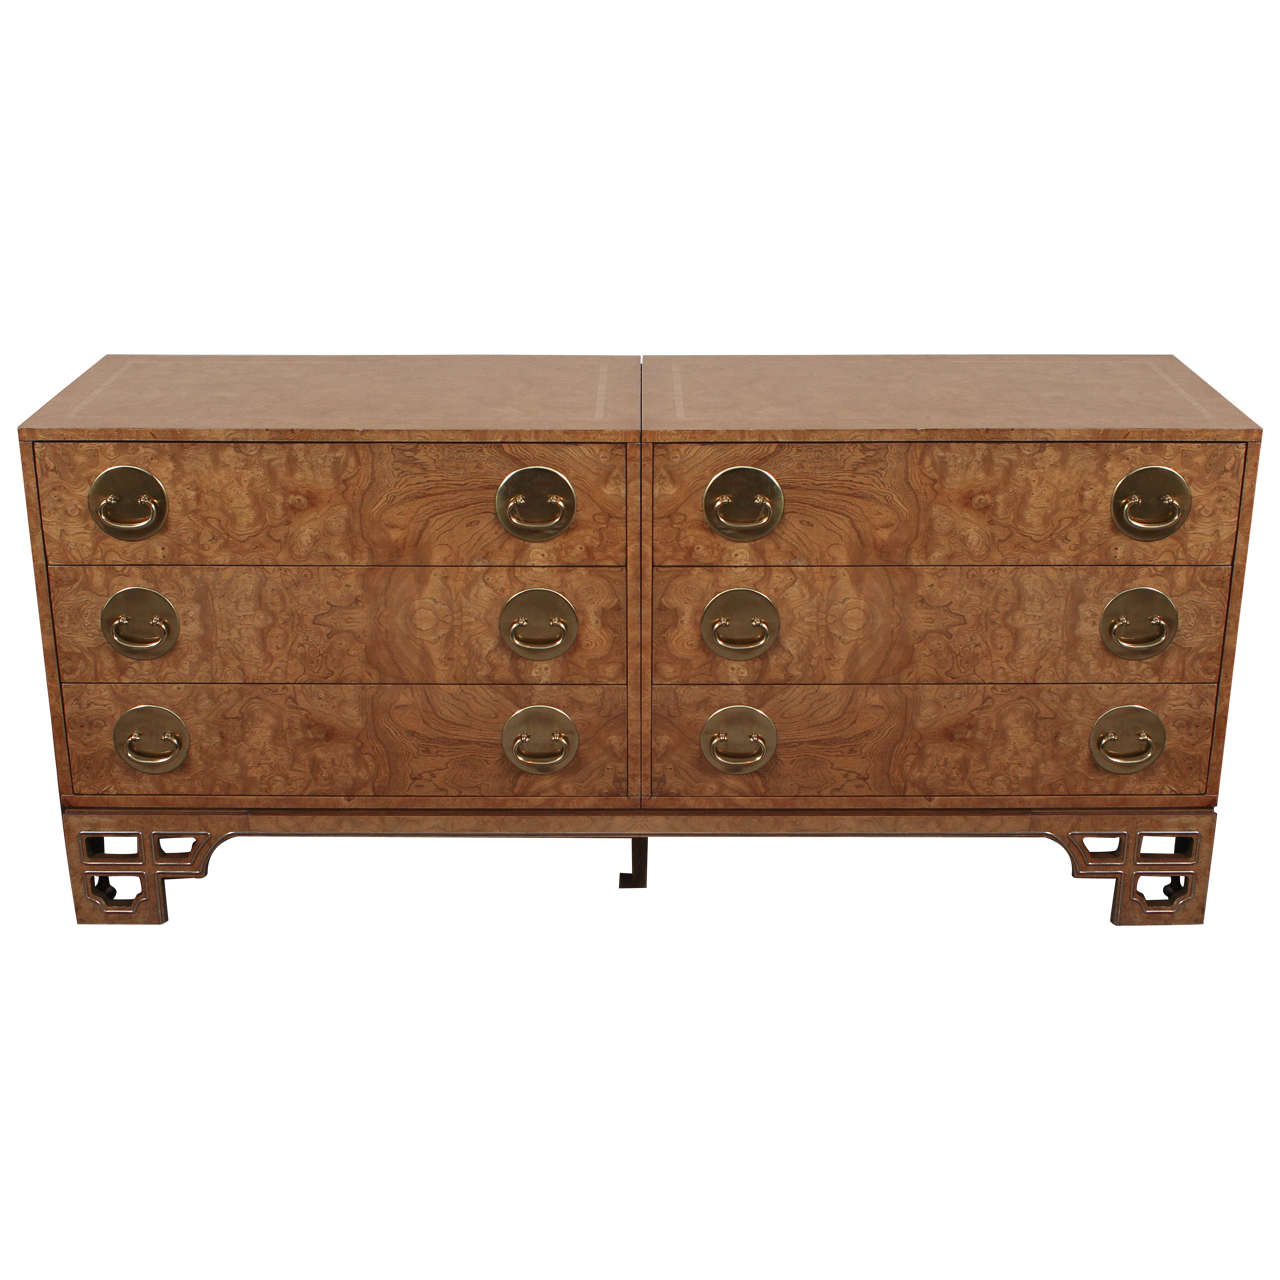 Beautiful Oriental Style Burl Wood Chest of Drawers by Mastercraft